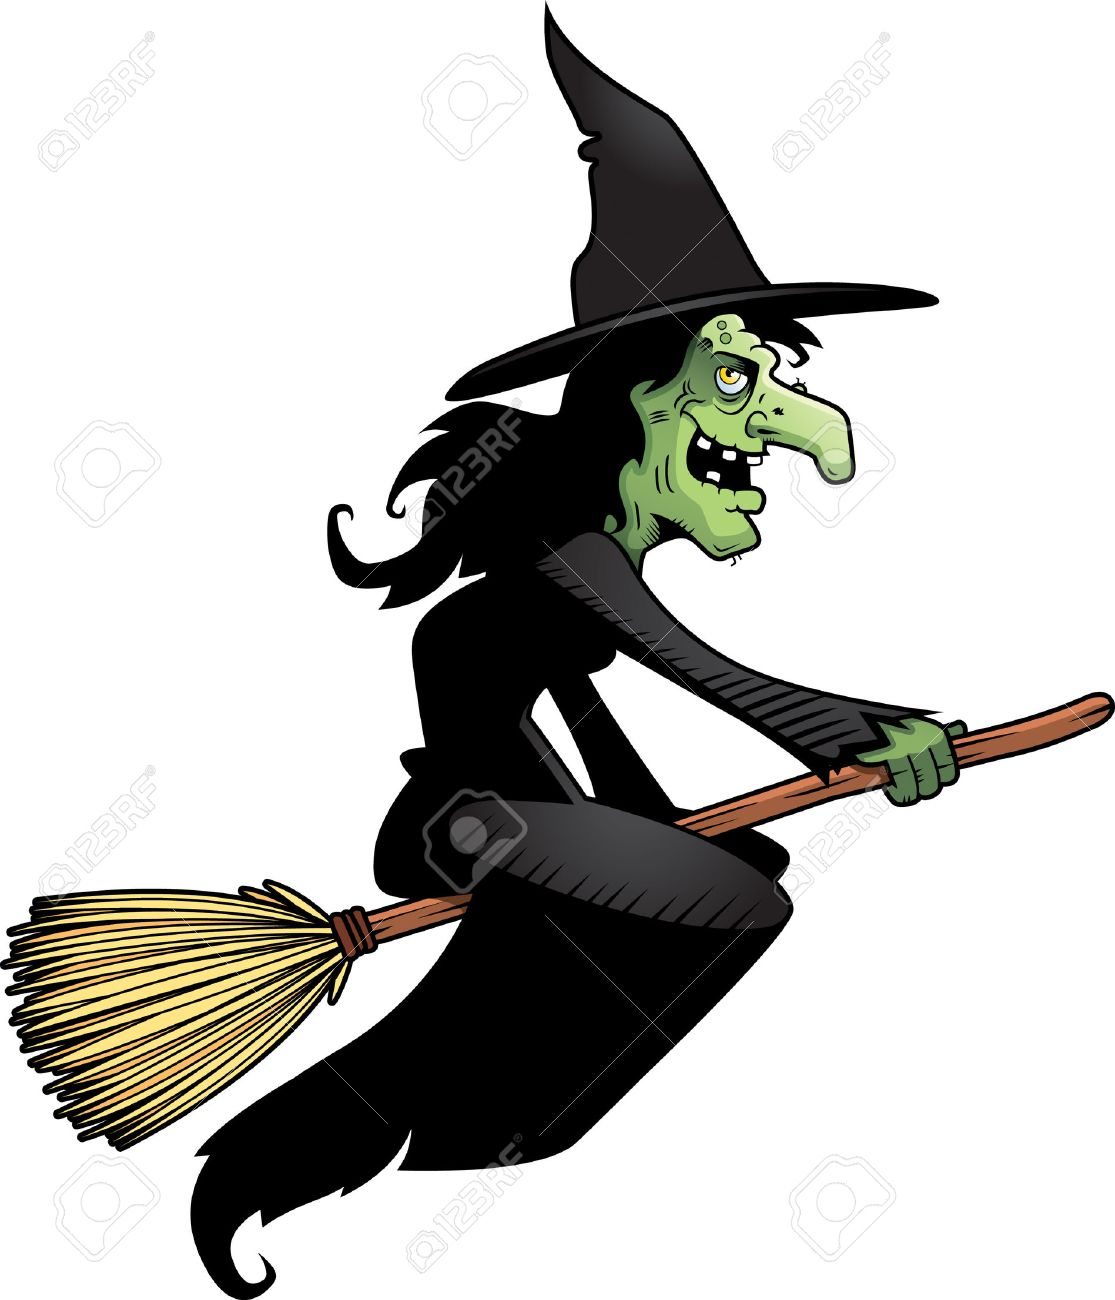 Image result for witch picture